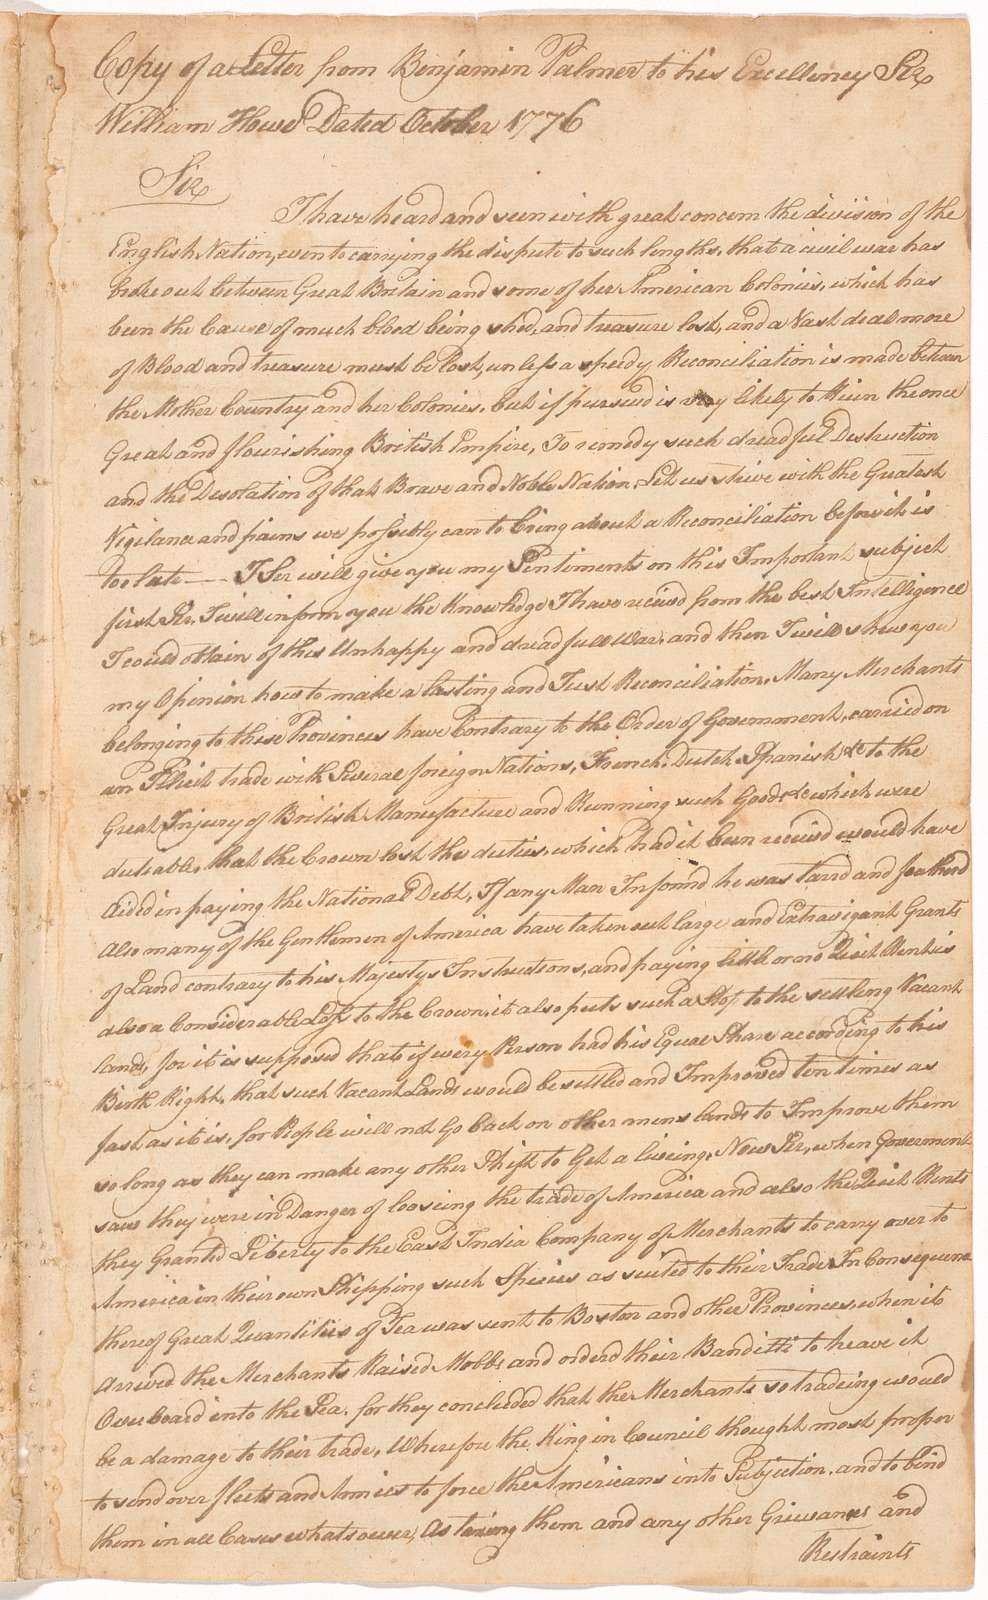 Letter from Benjamin Palmer to Sir William Howe